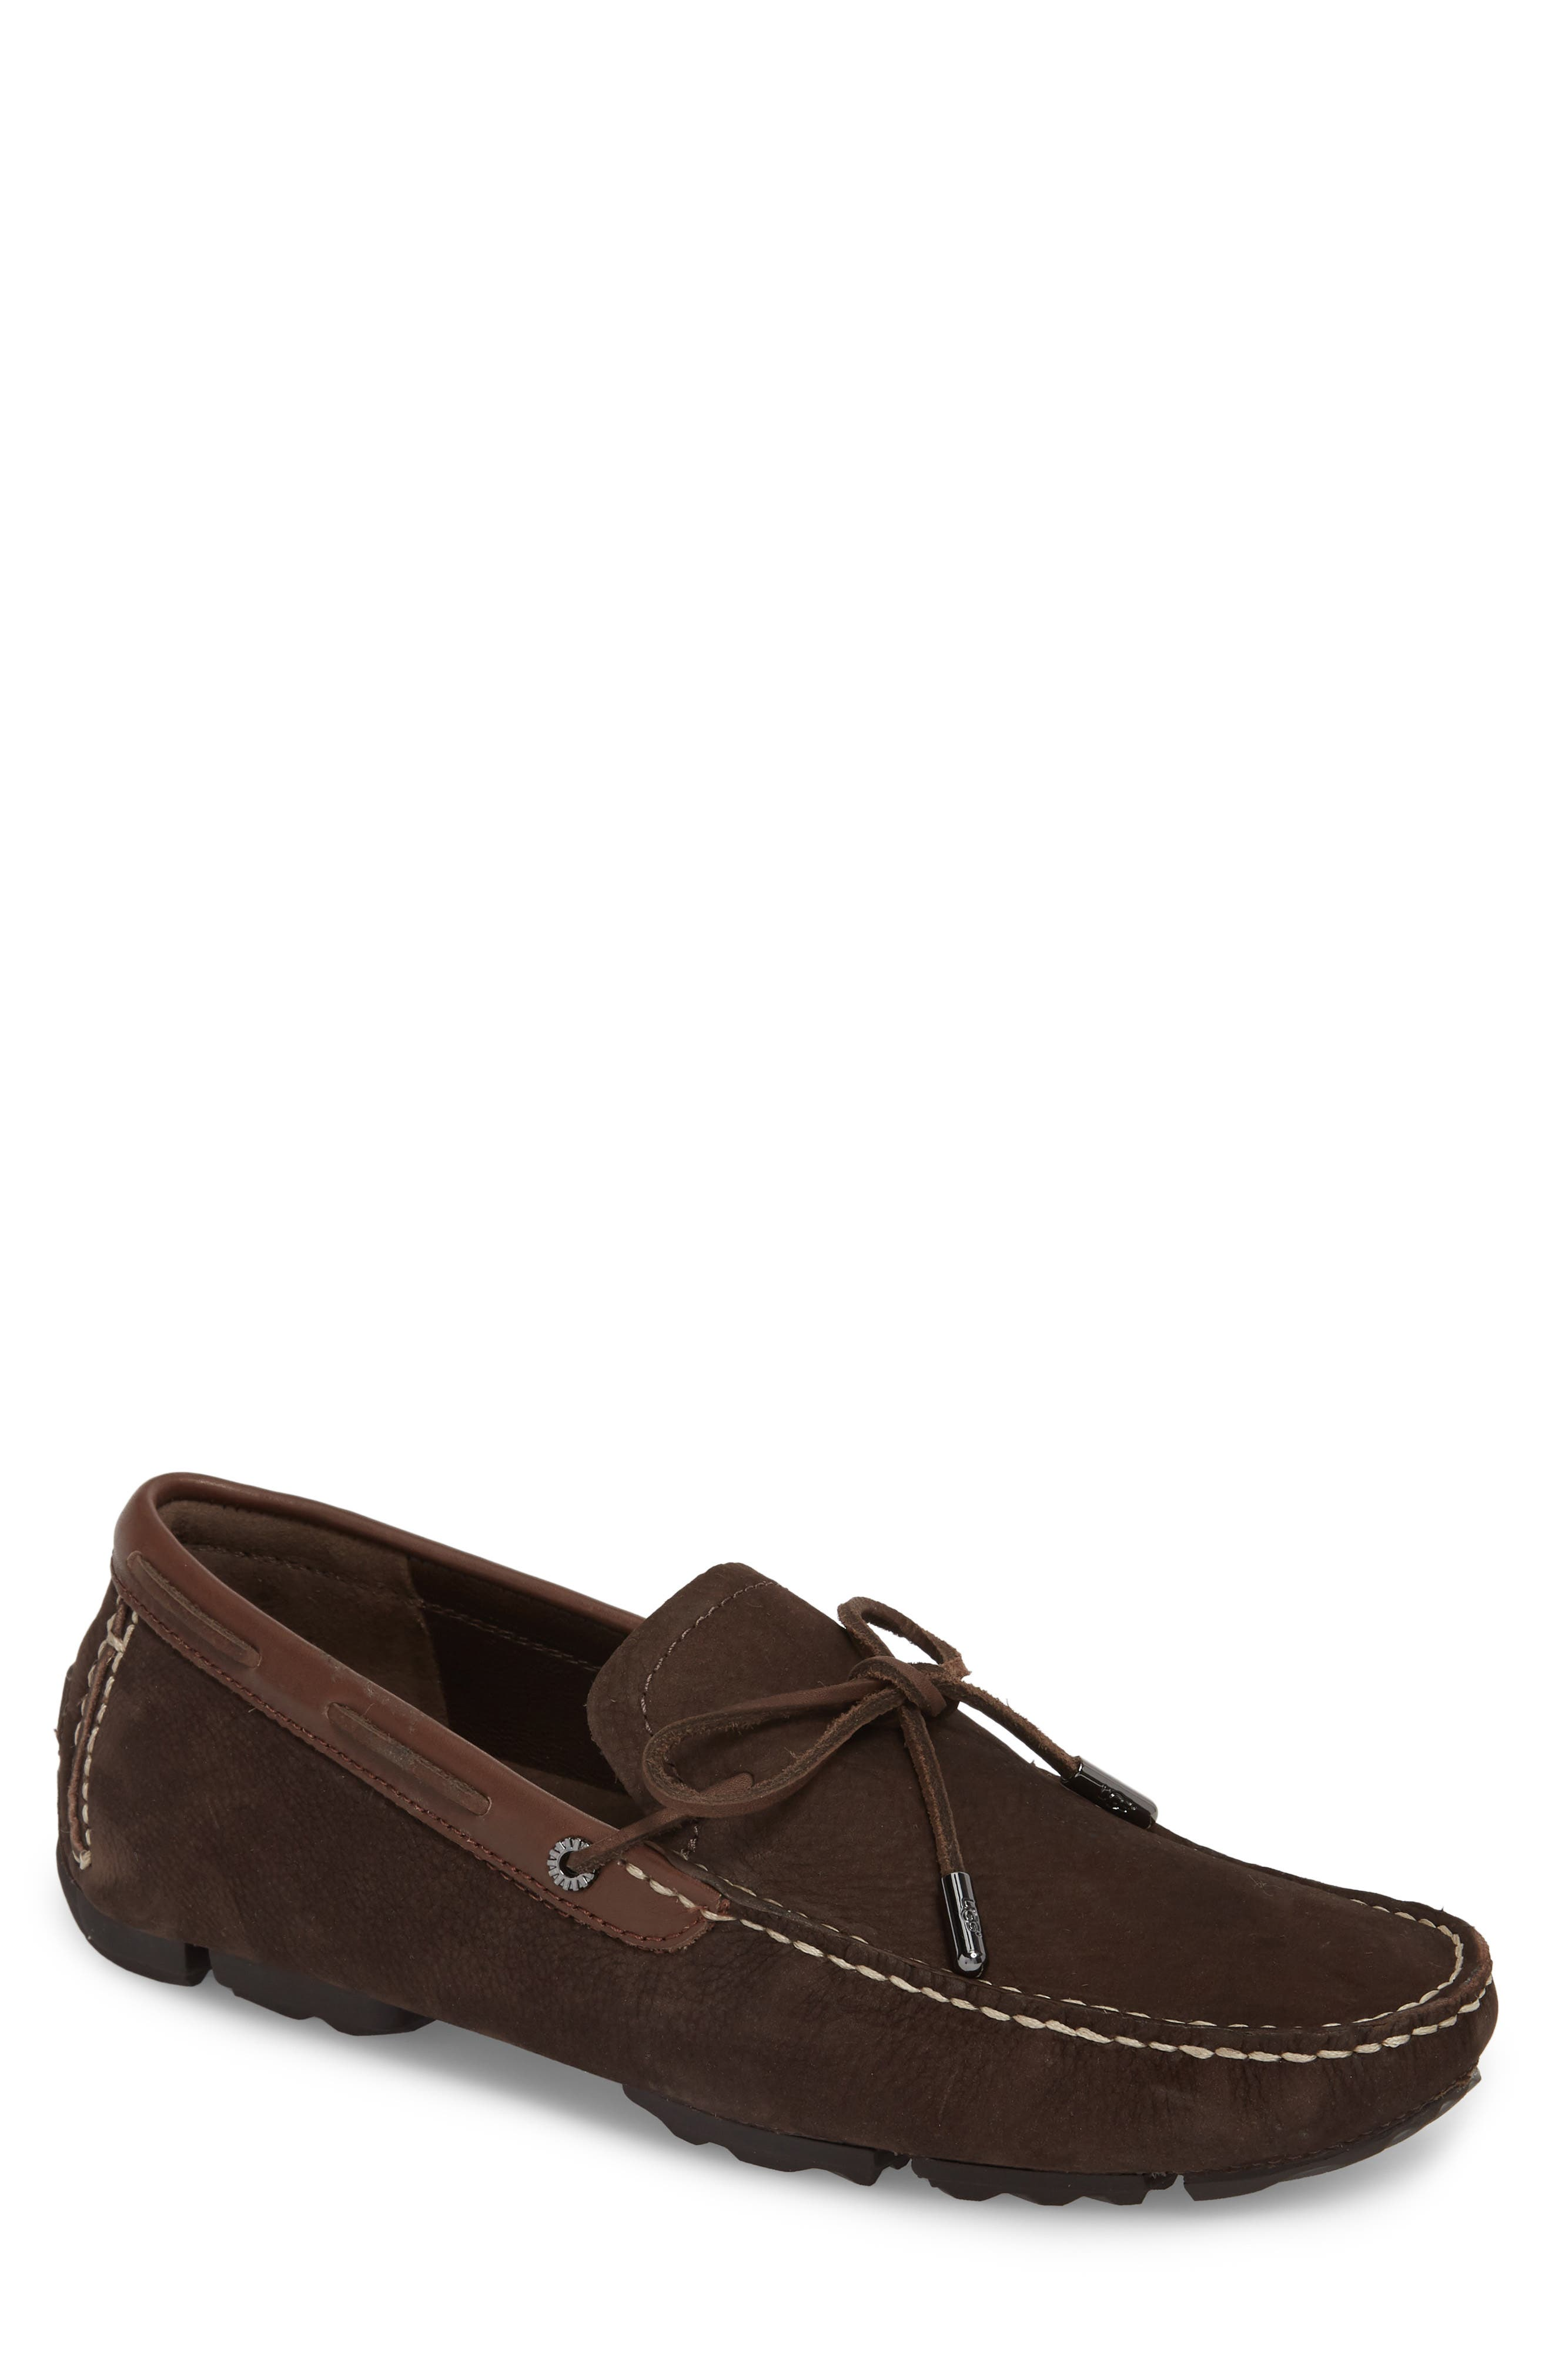 Bel Air Driving Moccasin,                         Main,                         color, STOUT LEATHER